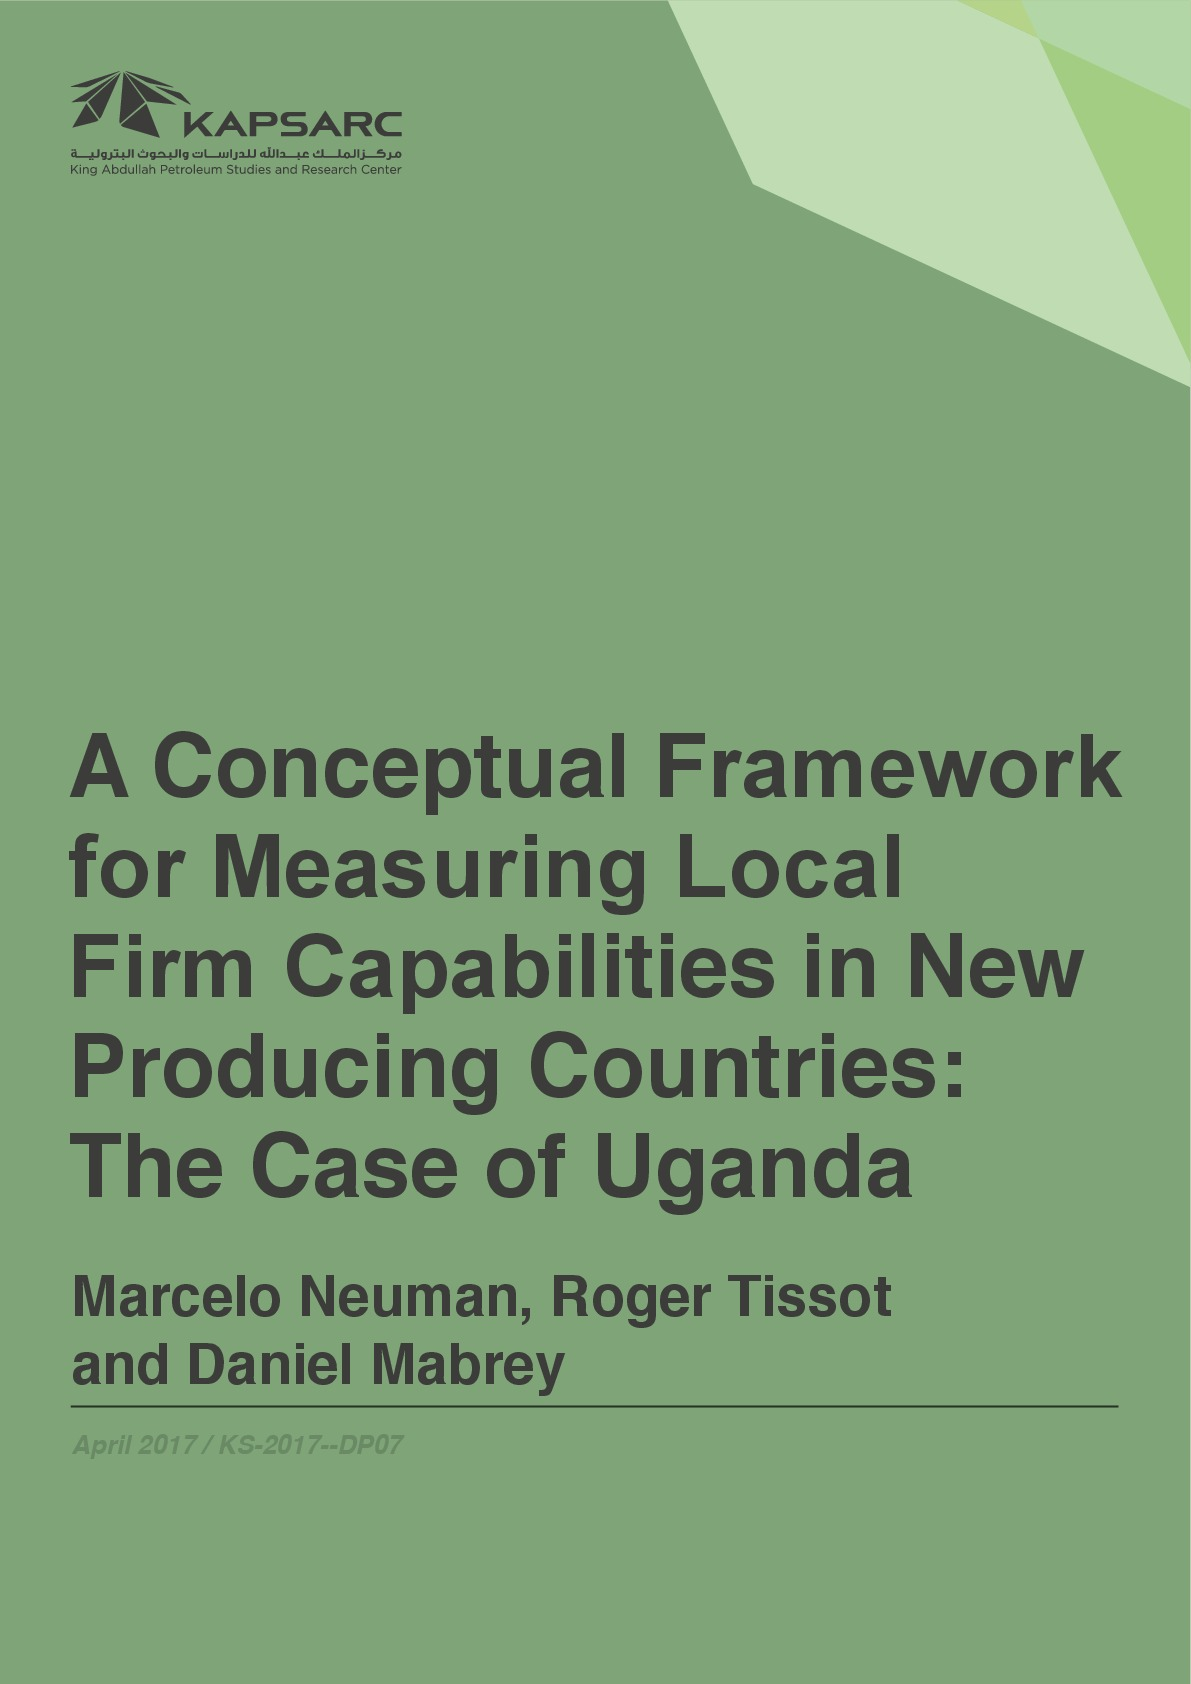 A Conceptual Framework for Measuring Local Firm Capabilities in New Producing Countries: The Case of Uganda